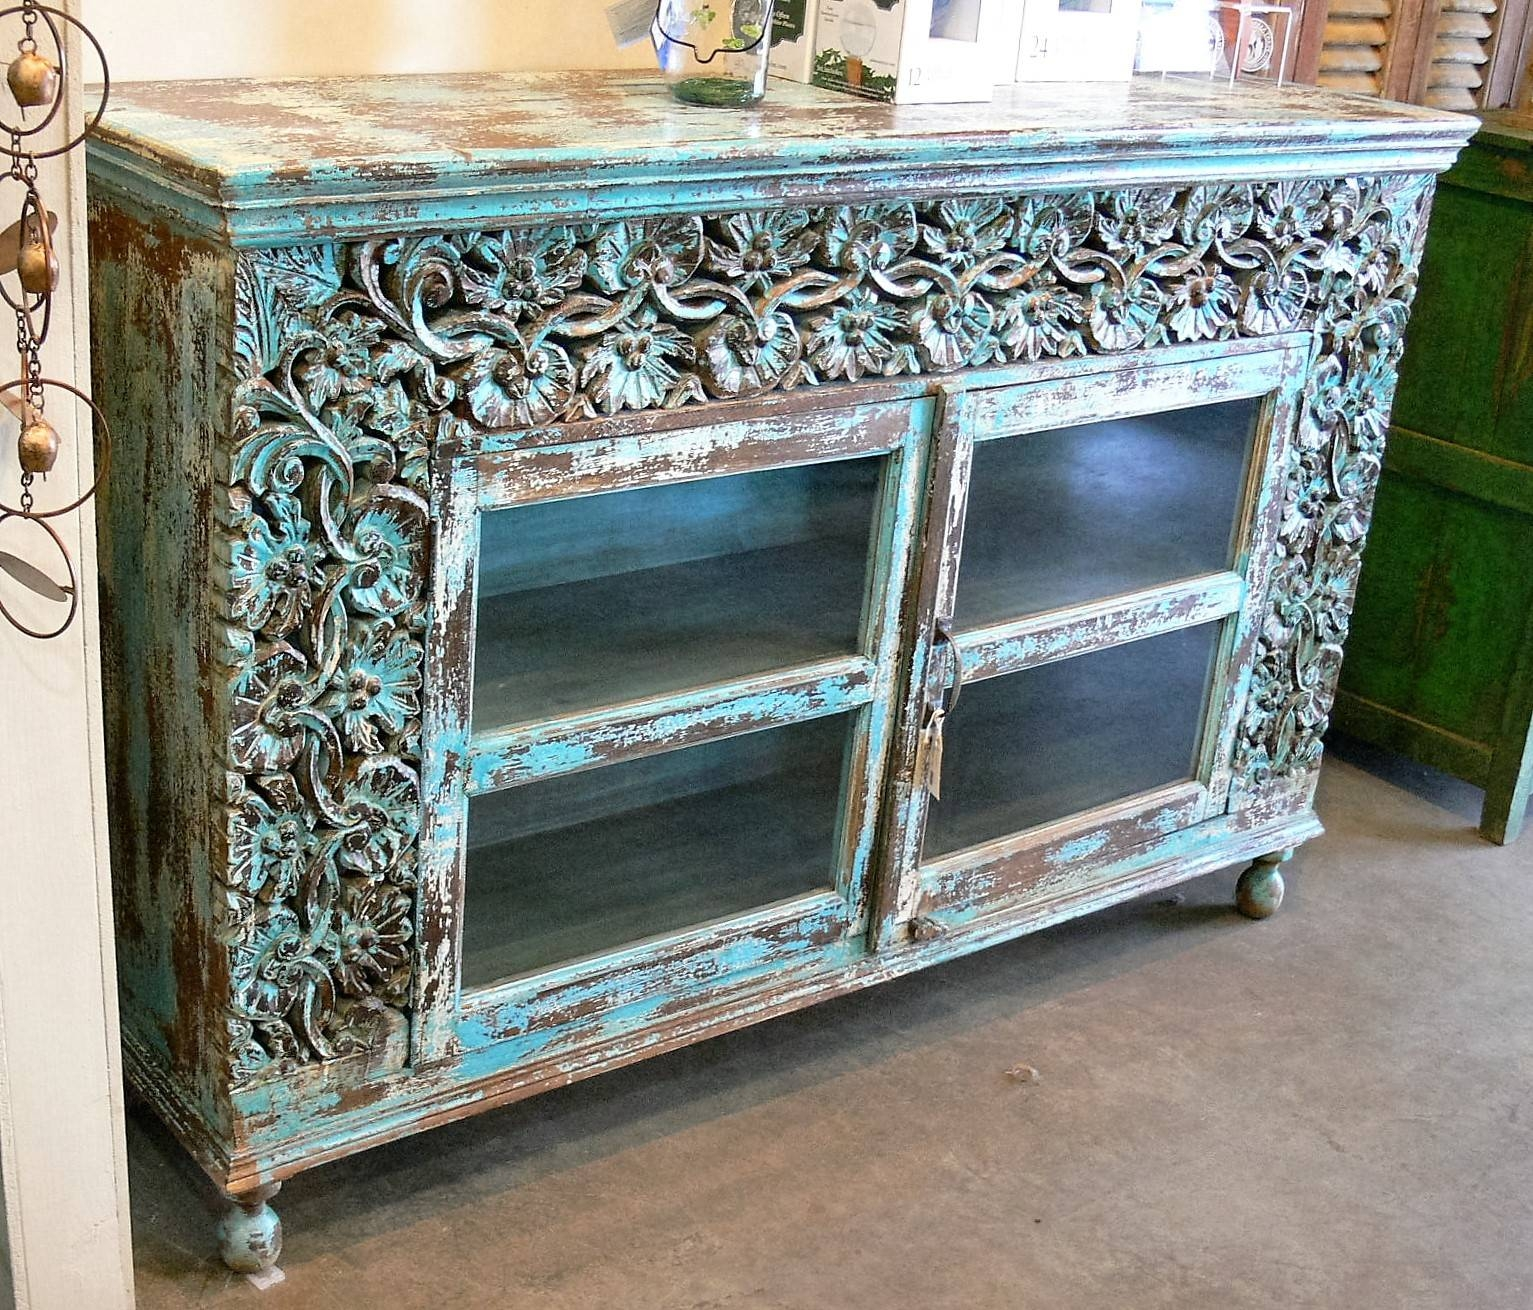 Sideboards & Buffets » Market Imports – Home, Patio, Antiques Within Latest Turquoise Sideboards (#7 of 15)